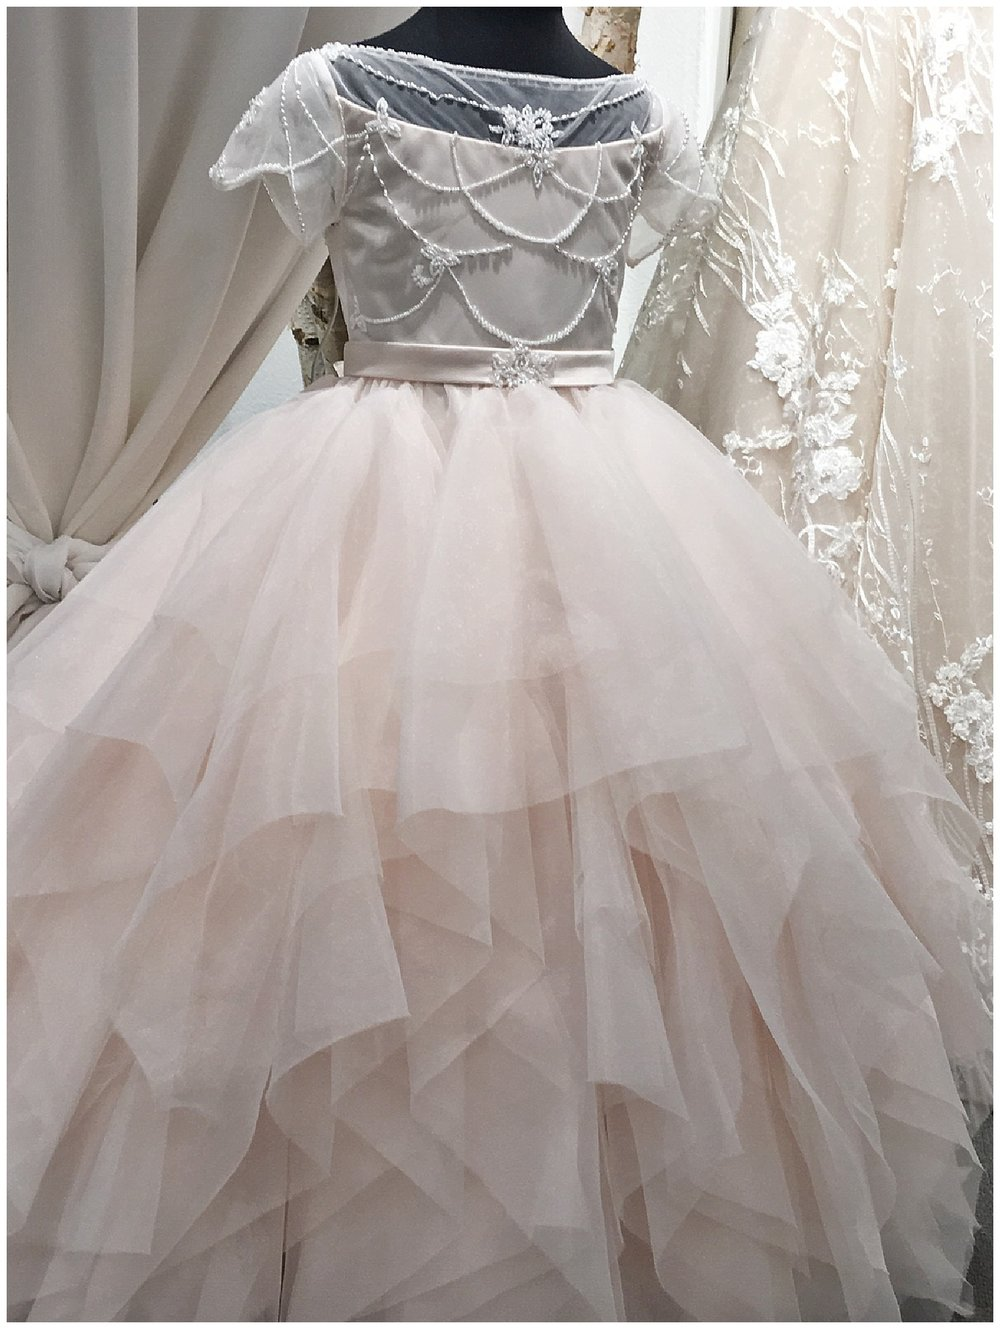 If you haven't been to Epiphany in a while, you are in for a treat! We expanded our flowergirl and communion dress section! Many sizes, styles and colors, that are available right off the rack.